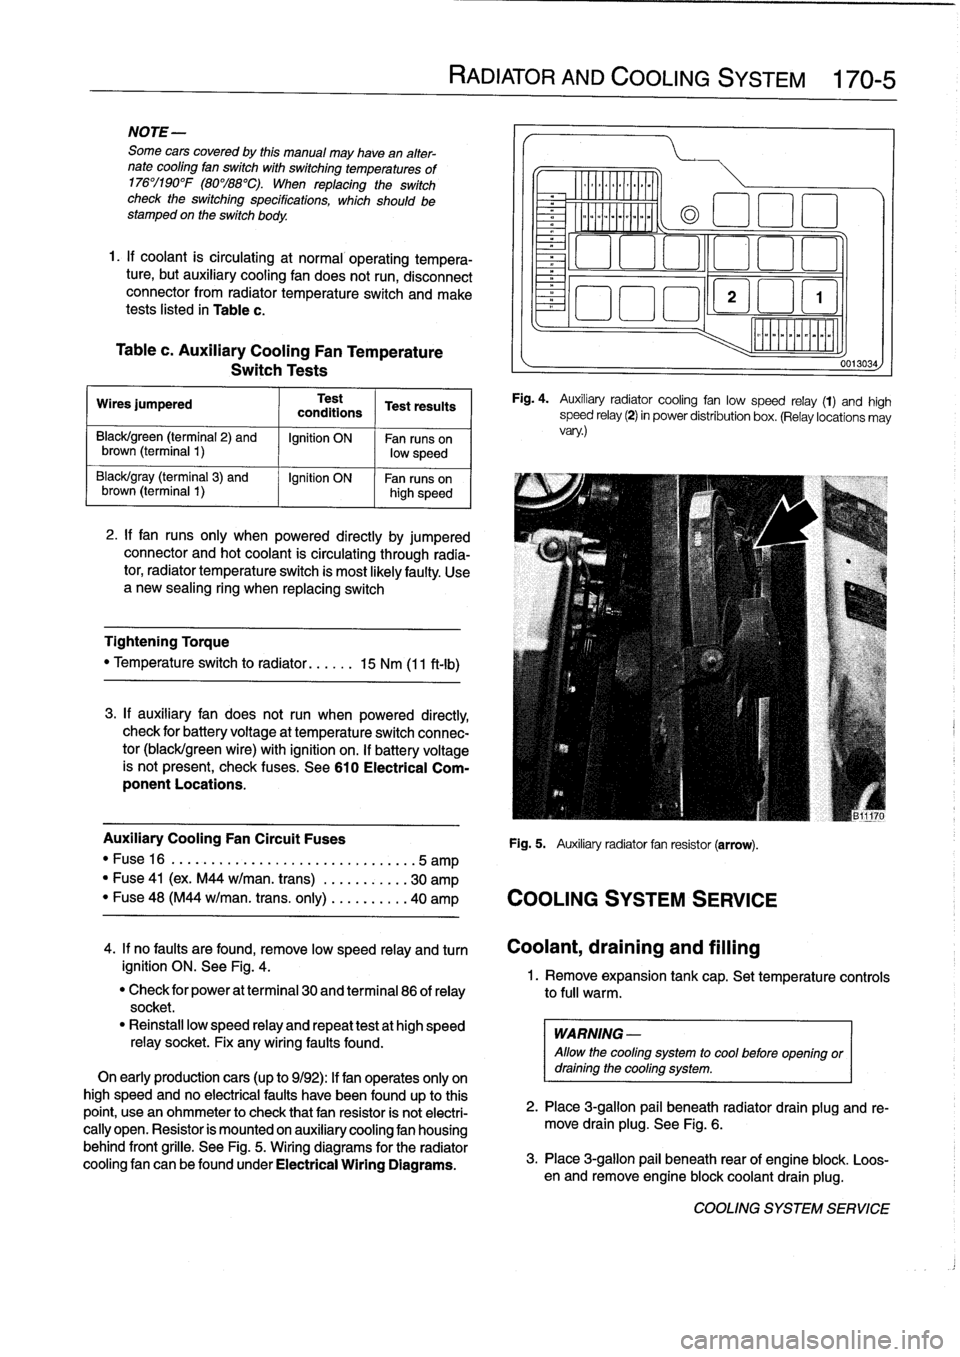 Fuses Bmw 325i 1992 E36 Workshop Manual Fuse Box Page 199